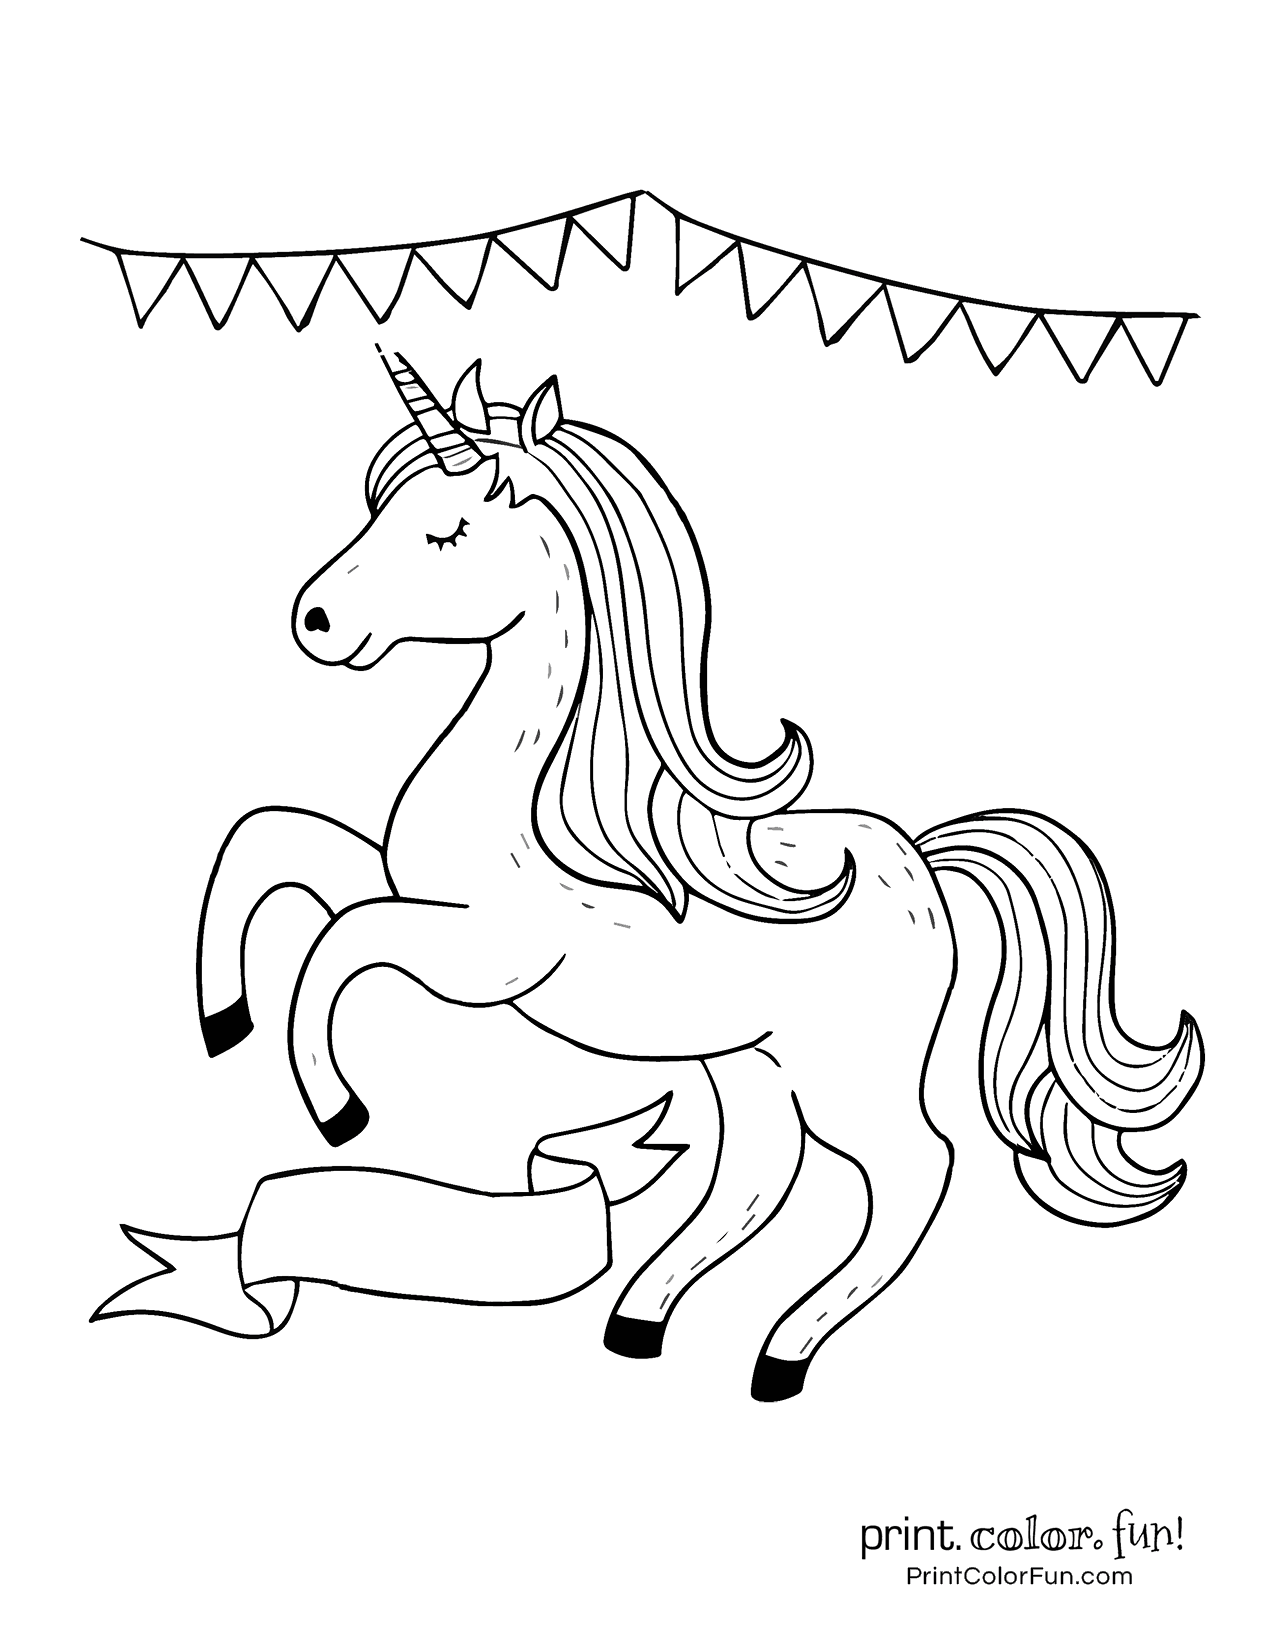 100 Magical Unicorn Coloring Pages The Ultimate Free Printable Collection At Print Color Fun Unicorn Coloring Pages Mermaid Coloring Pages Coloring Pages